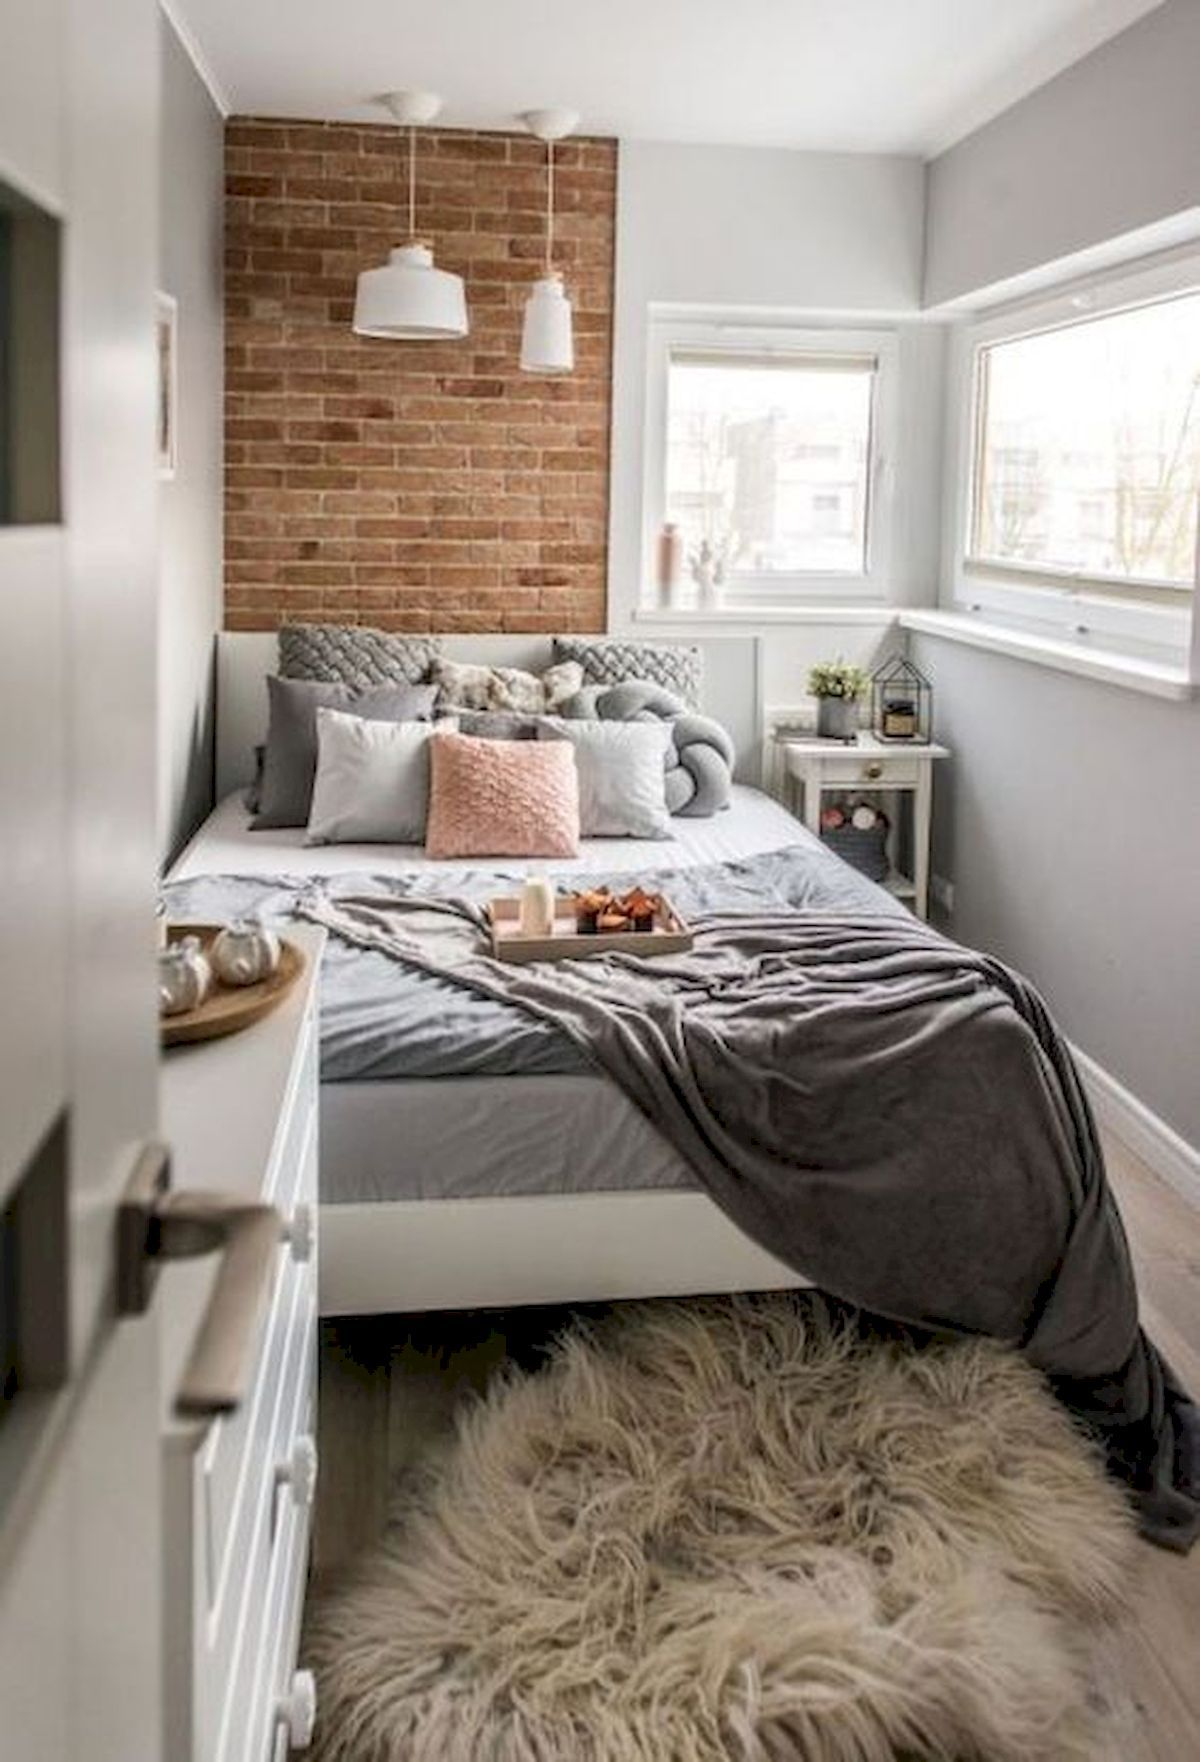 45 Awesome Small Apartment Bedroom Design And Decor Ideas Apartment Bedroom Decor Tiny Bedroom Design Small Apartment Bedrooms